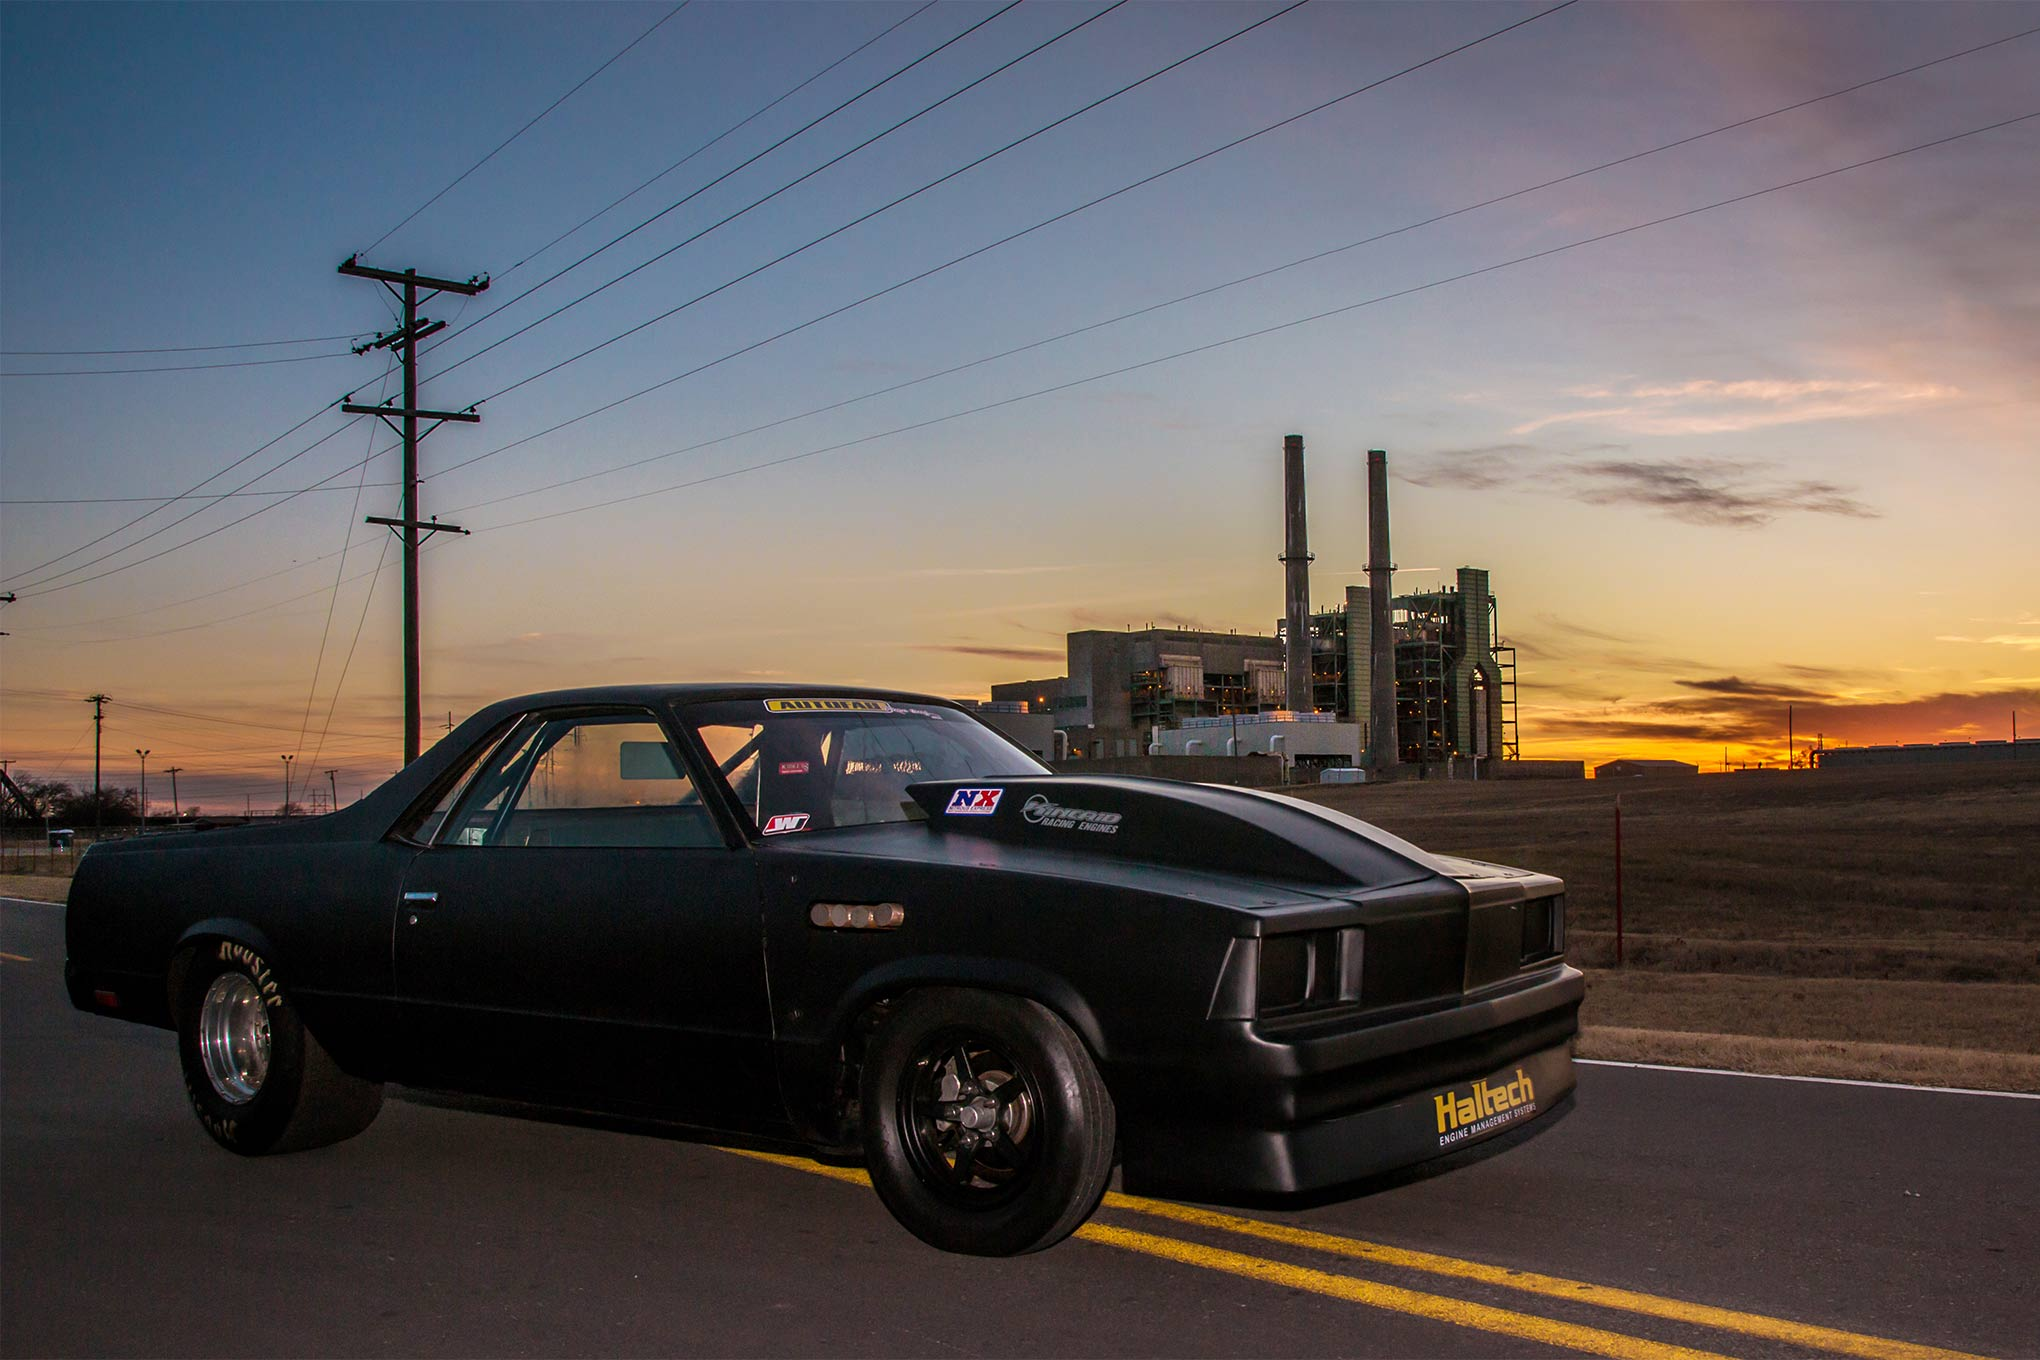 Old Classic El Camino Muscle Cars Wallpaper Street Outlaws Kamikaze Chris And The Elco Hot Rod Network